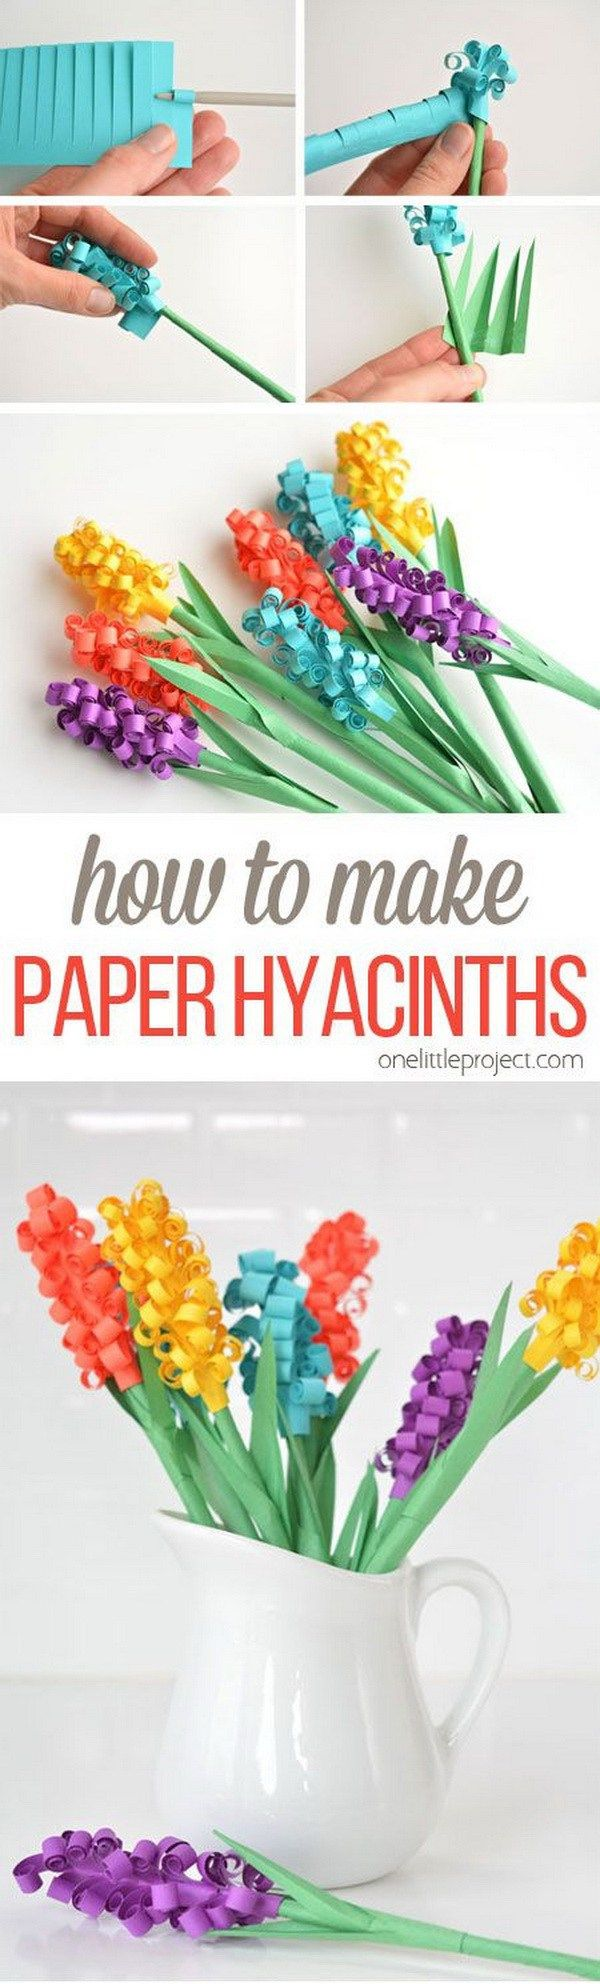 Budget friendly diy home decor projects with tutorials hyacinth handmade paper hyacinth flowers these paper hyacinth flowers are easy to put together and make mightylinksfo